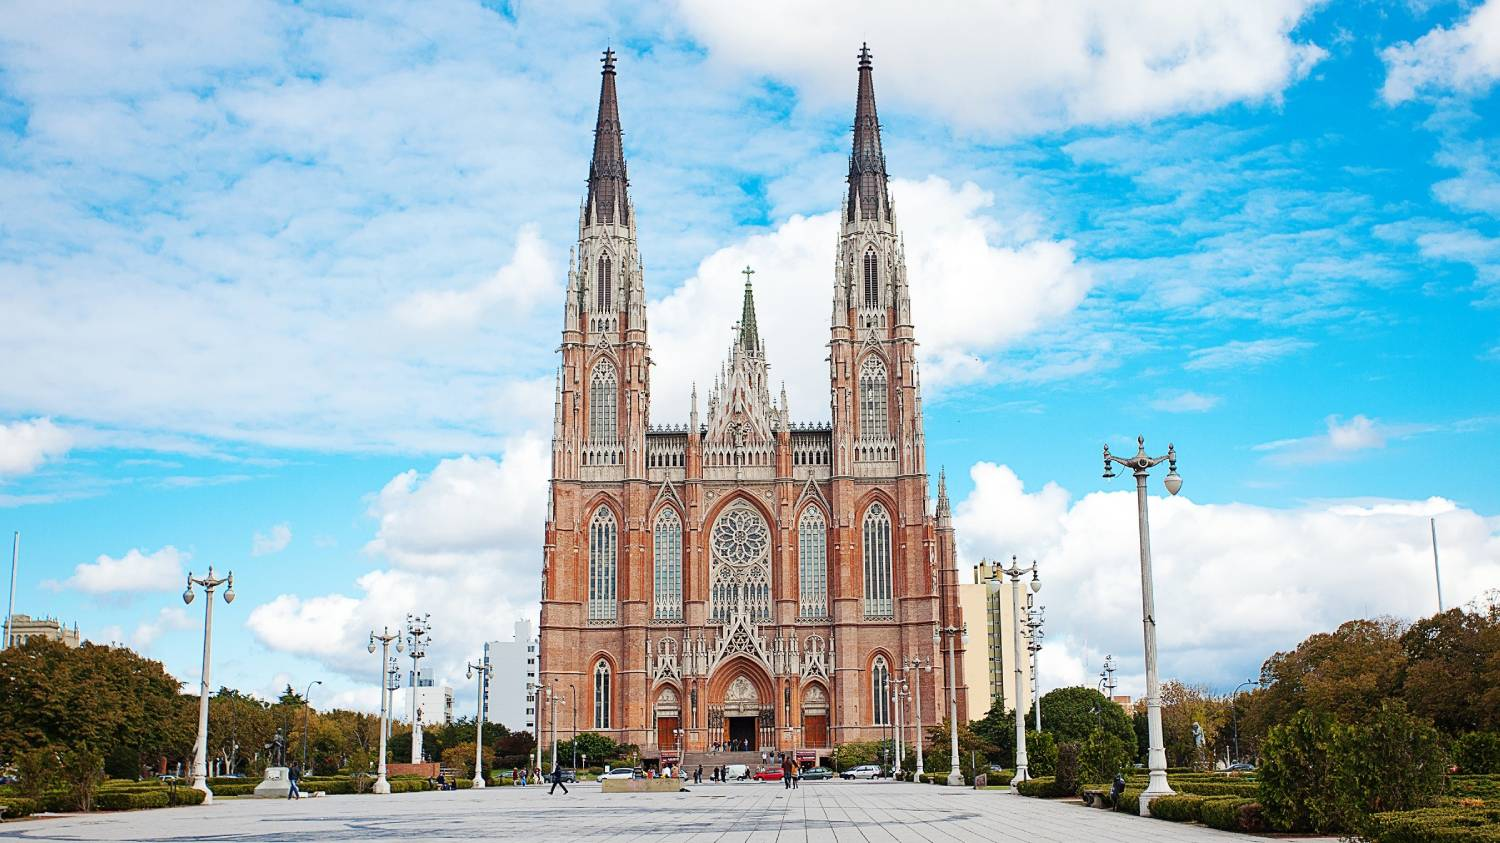 La Plata - Things To Do In Buenos Aires